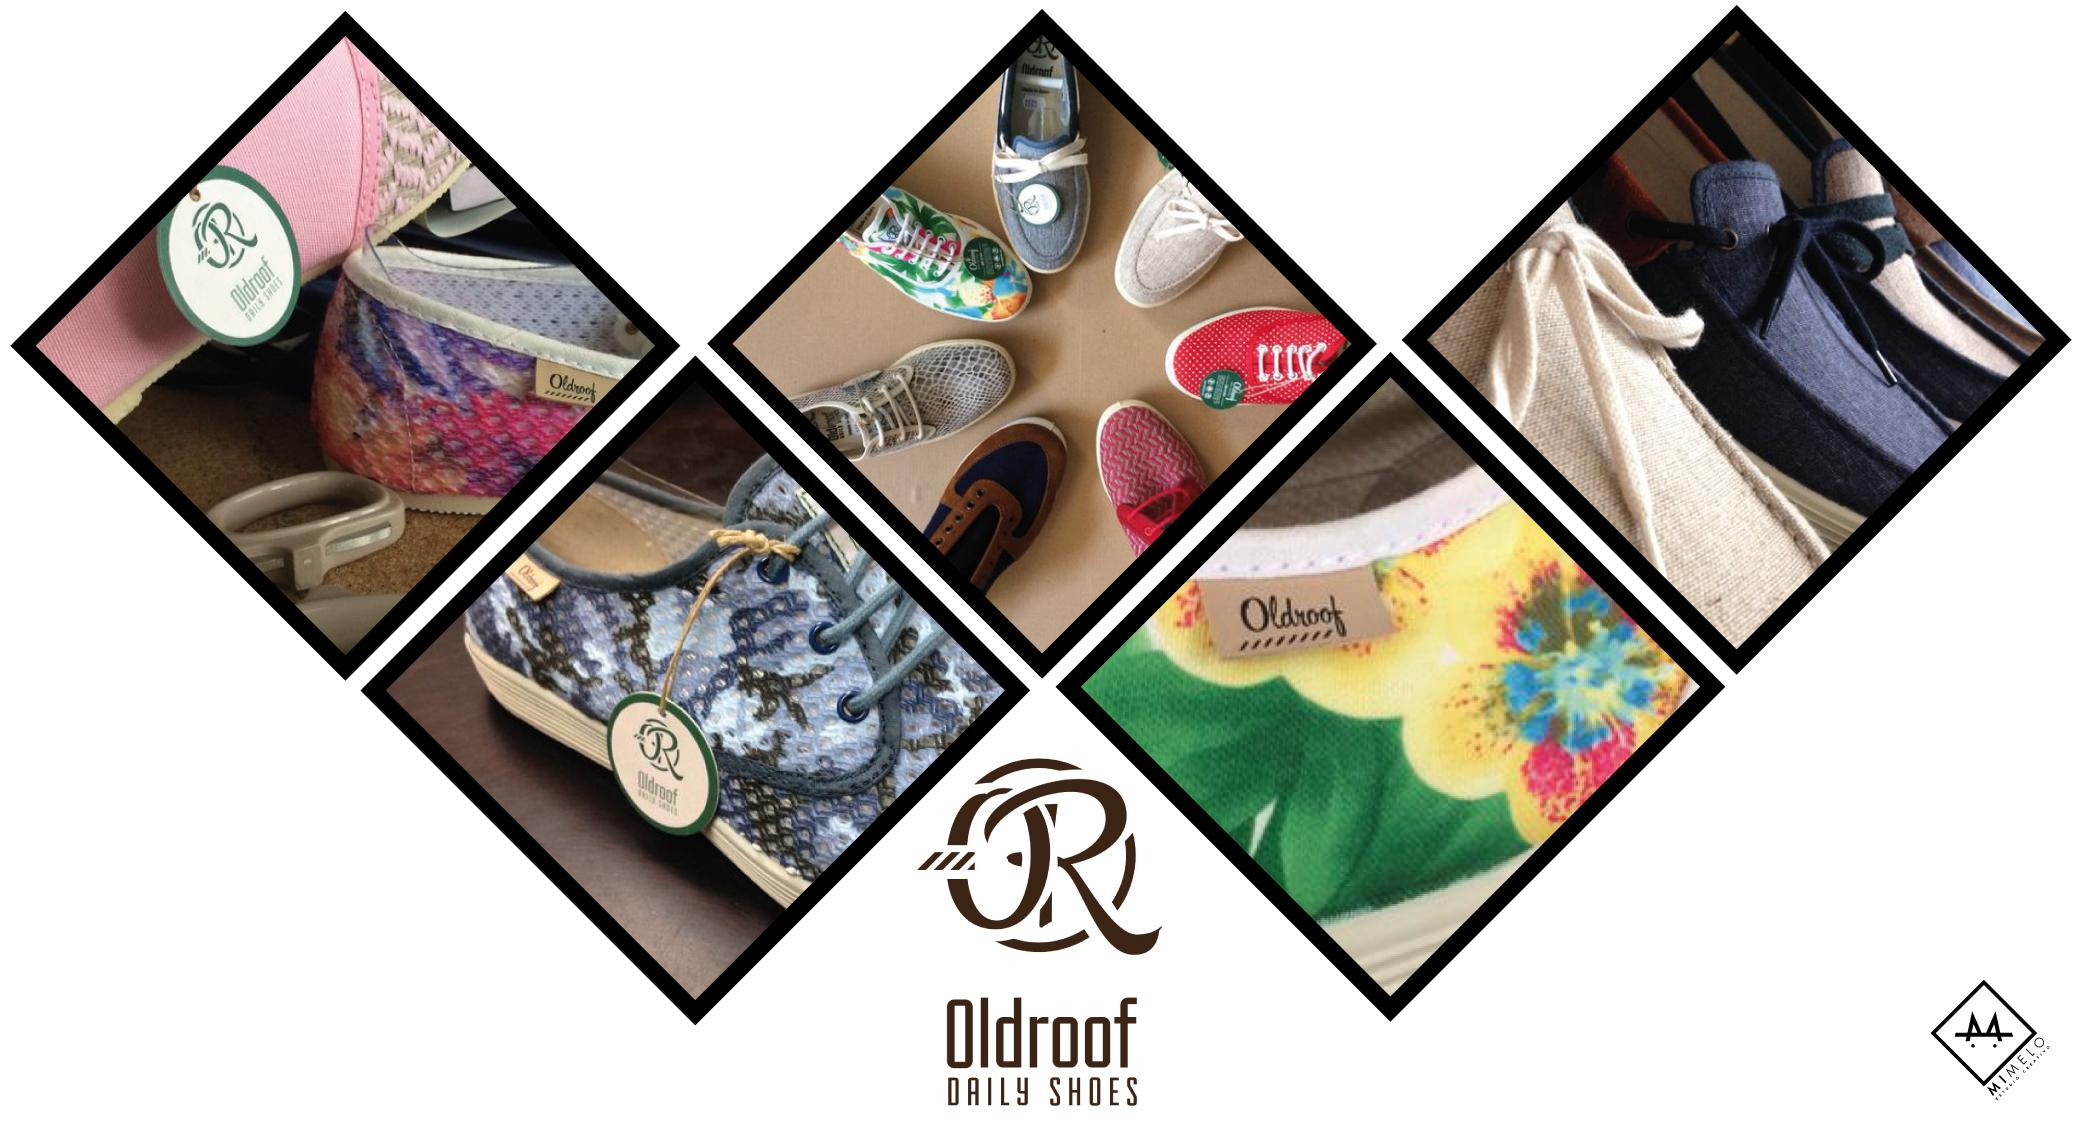 Oldroof - Mimelo Estudio Creativo